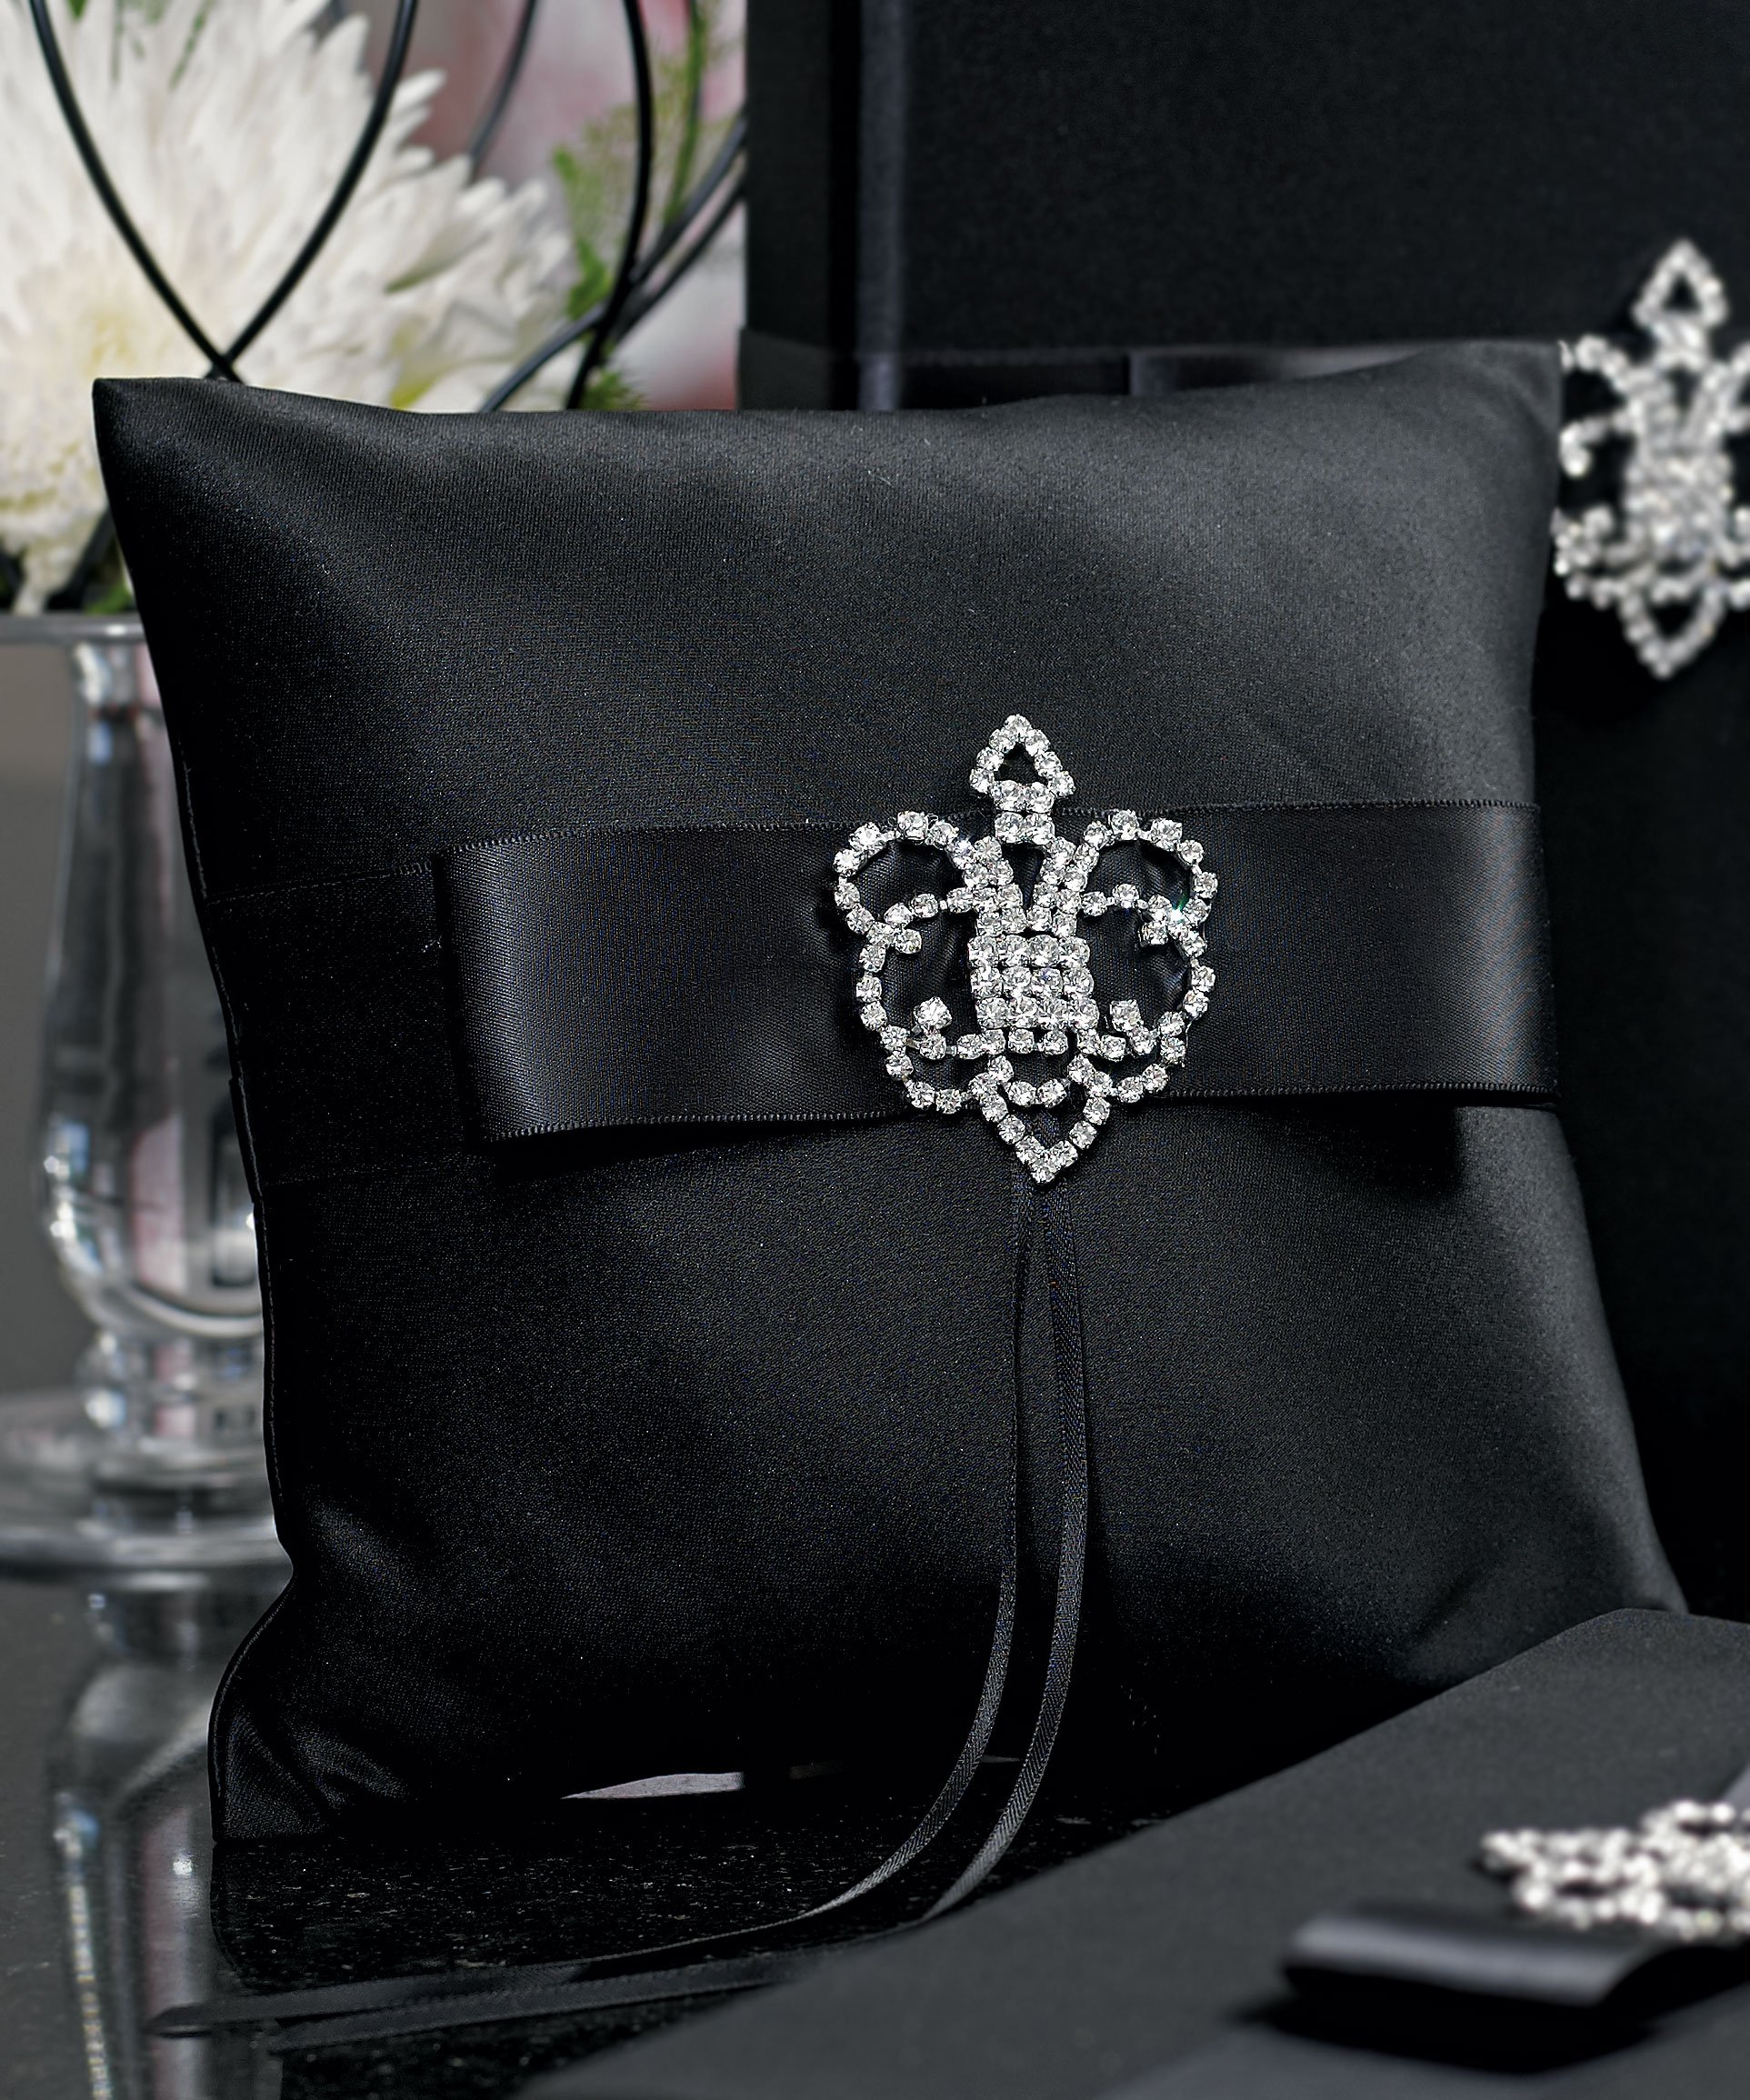 Weddingstar Beverly Clark The Crowned Jewel Collection Ring Pillow, Black